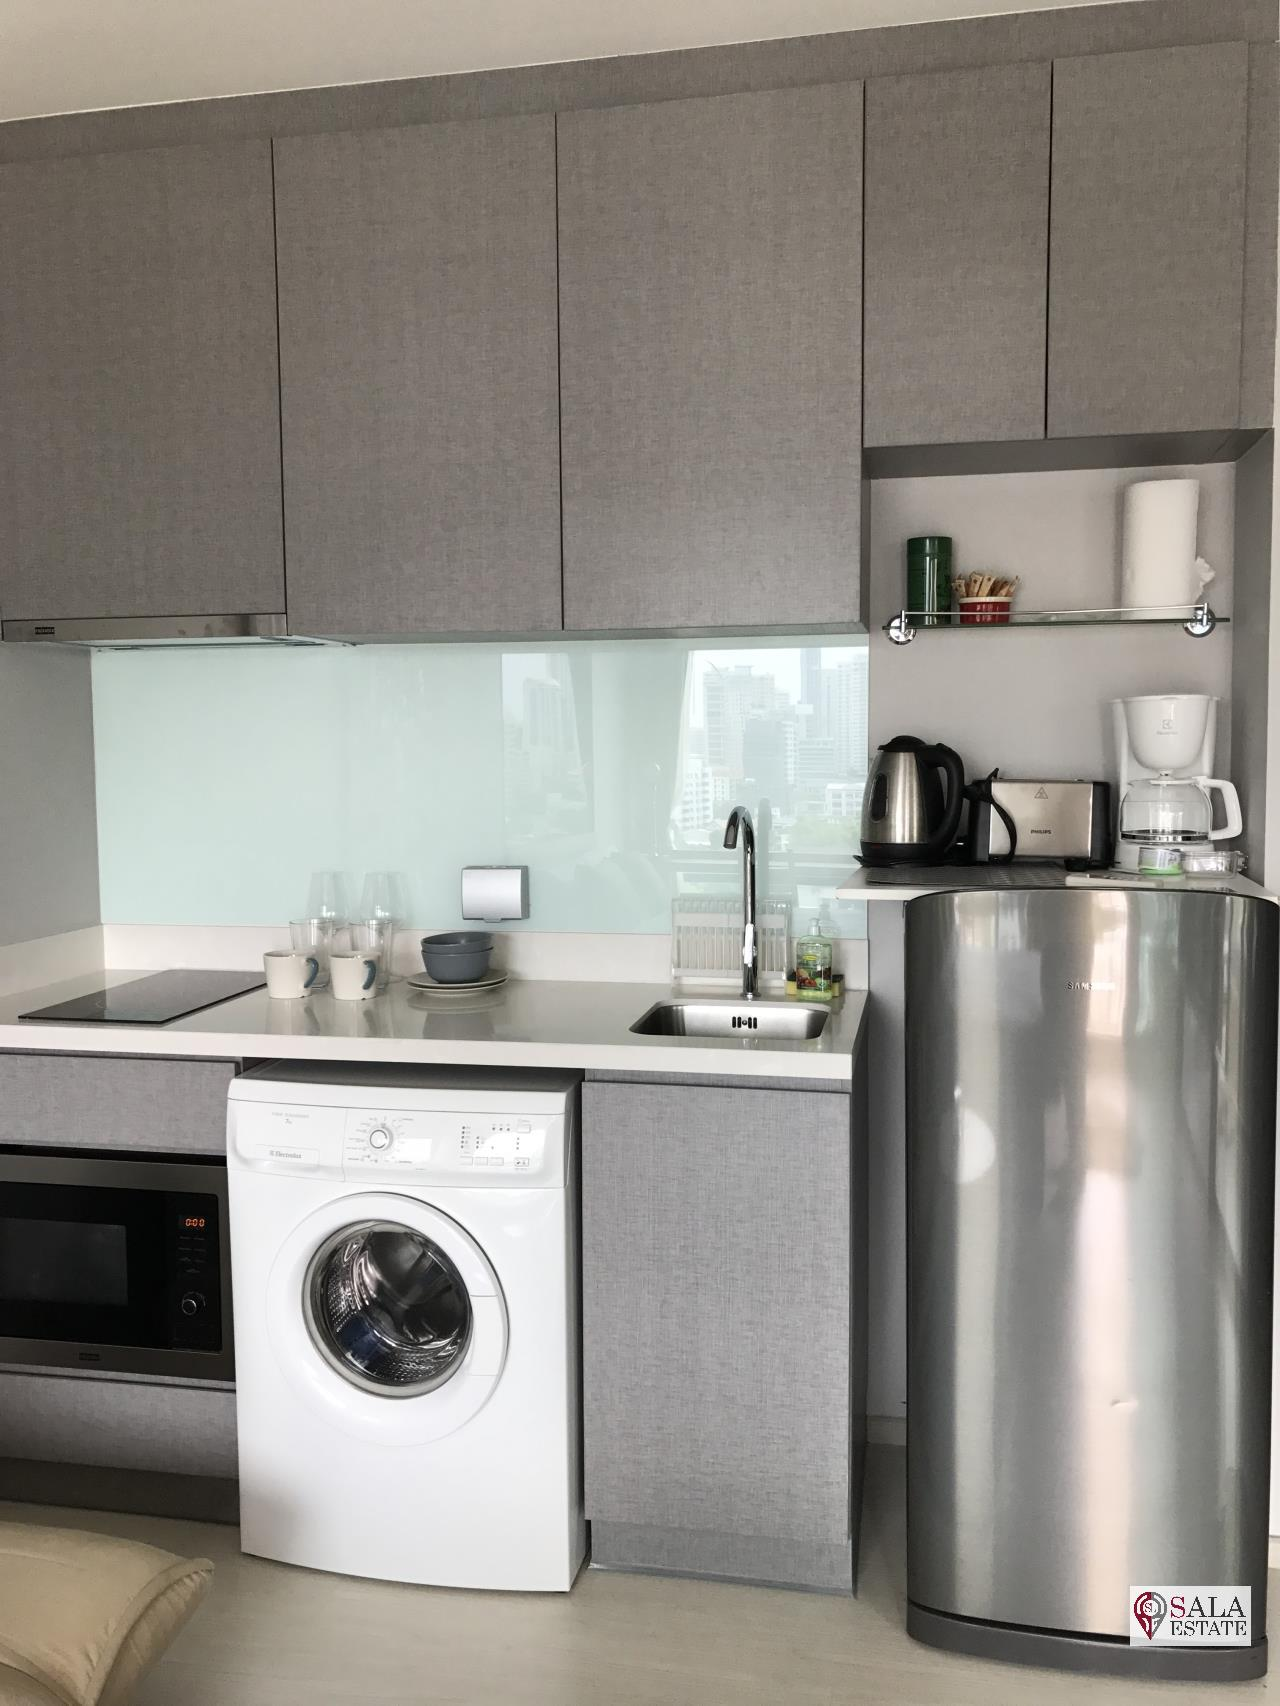 SALA ESTATE Agency's (FOR SALE WITH TENANT) RHYTHM SUKHUMVIT 36-38 – BTS THONG LOR, 24.5 SQM, STUDIO, FULLY FURNISHED 7